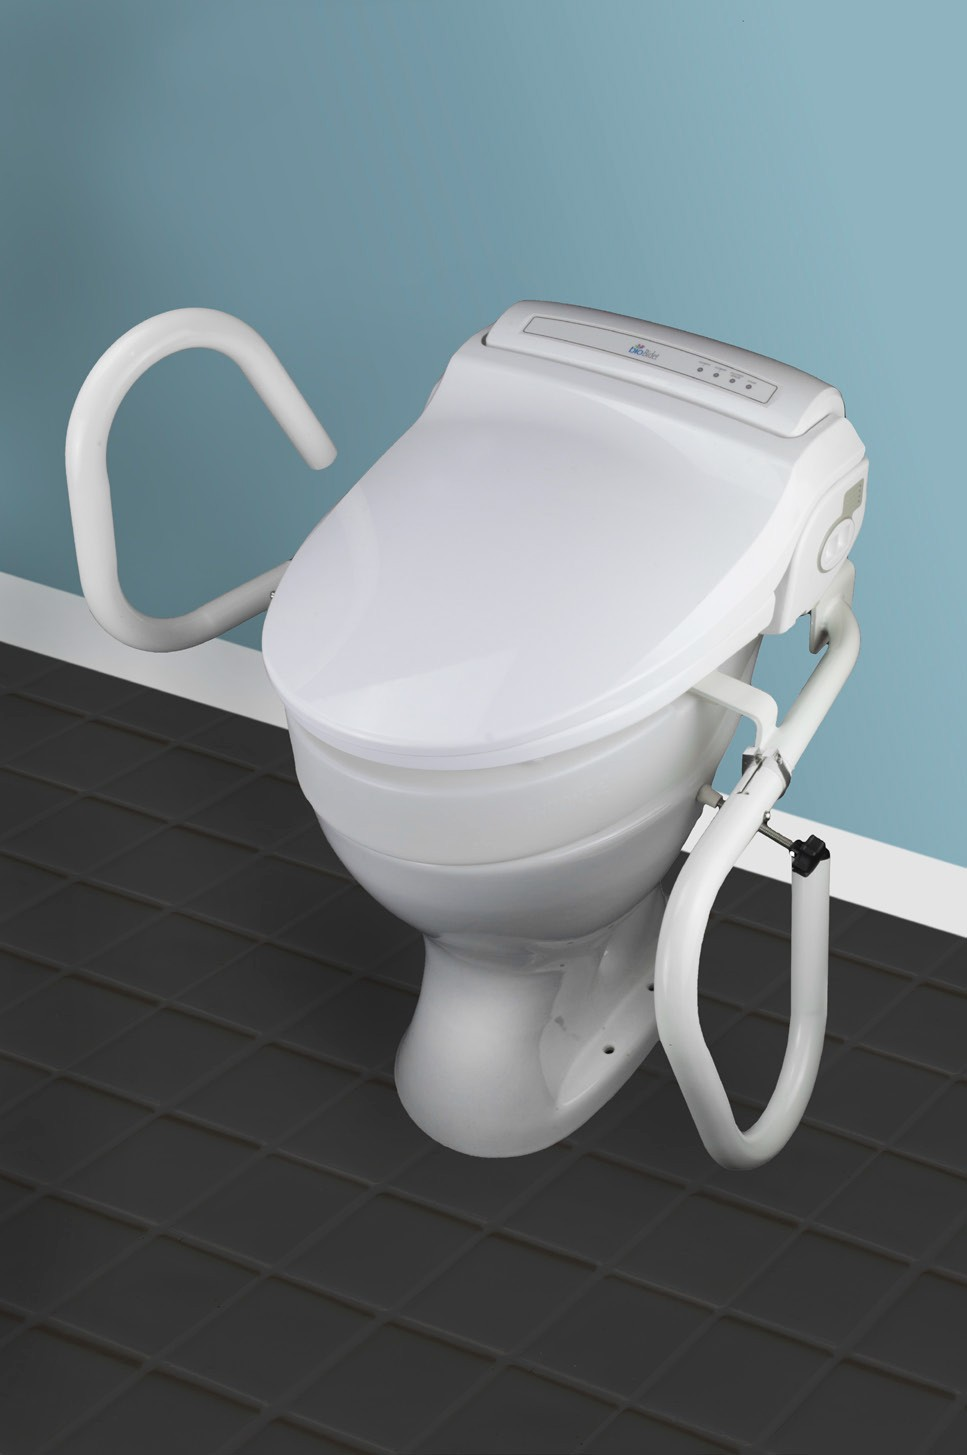 Brilliant Bio Bidet 800 Bidet Toilet Seat For Intimate Hygiene Caraccident5 Cool Chair Designs And Ideas Caraccident5Info